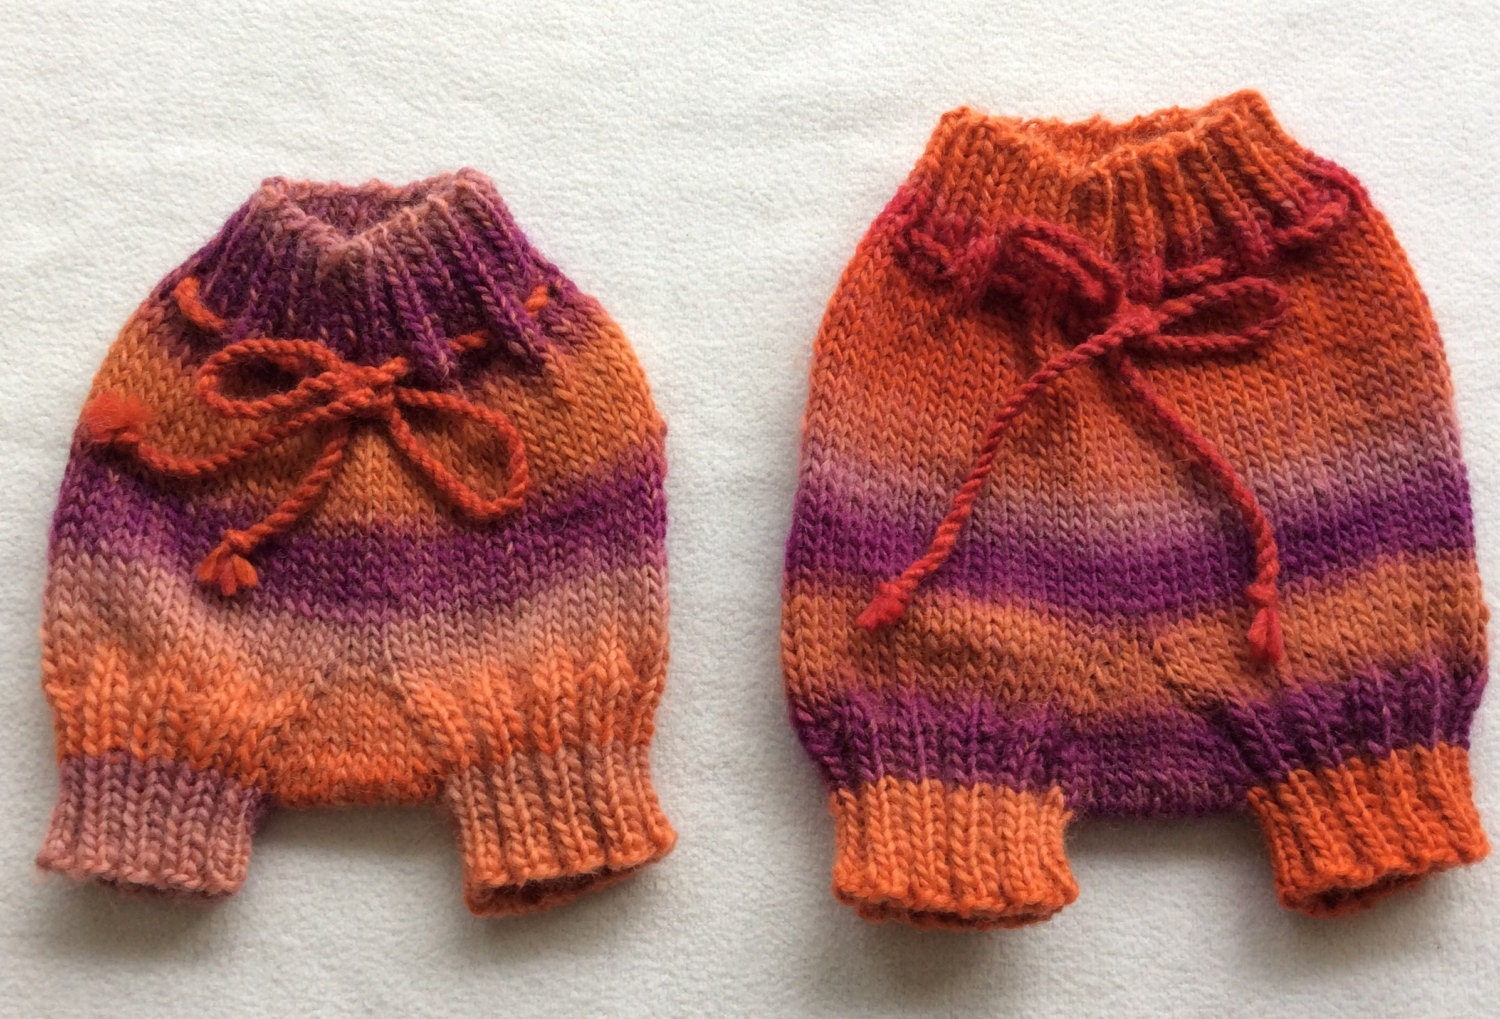 Sunrise (Pink  Orange) Hand Knitted Wool Shortie Soaker Newborn Cloth DiaperTerry Nappy Covers